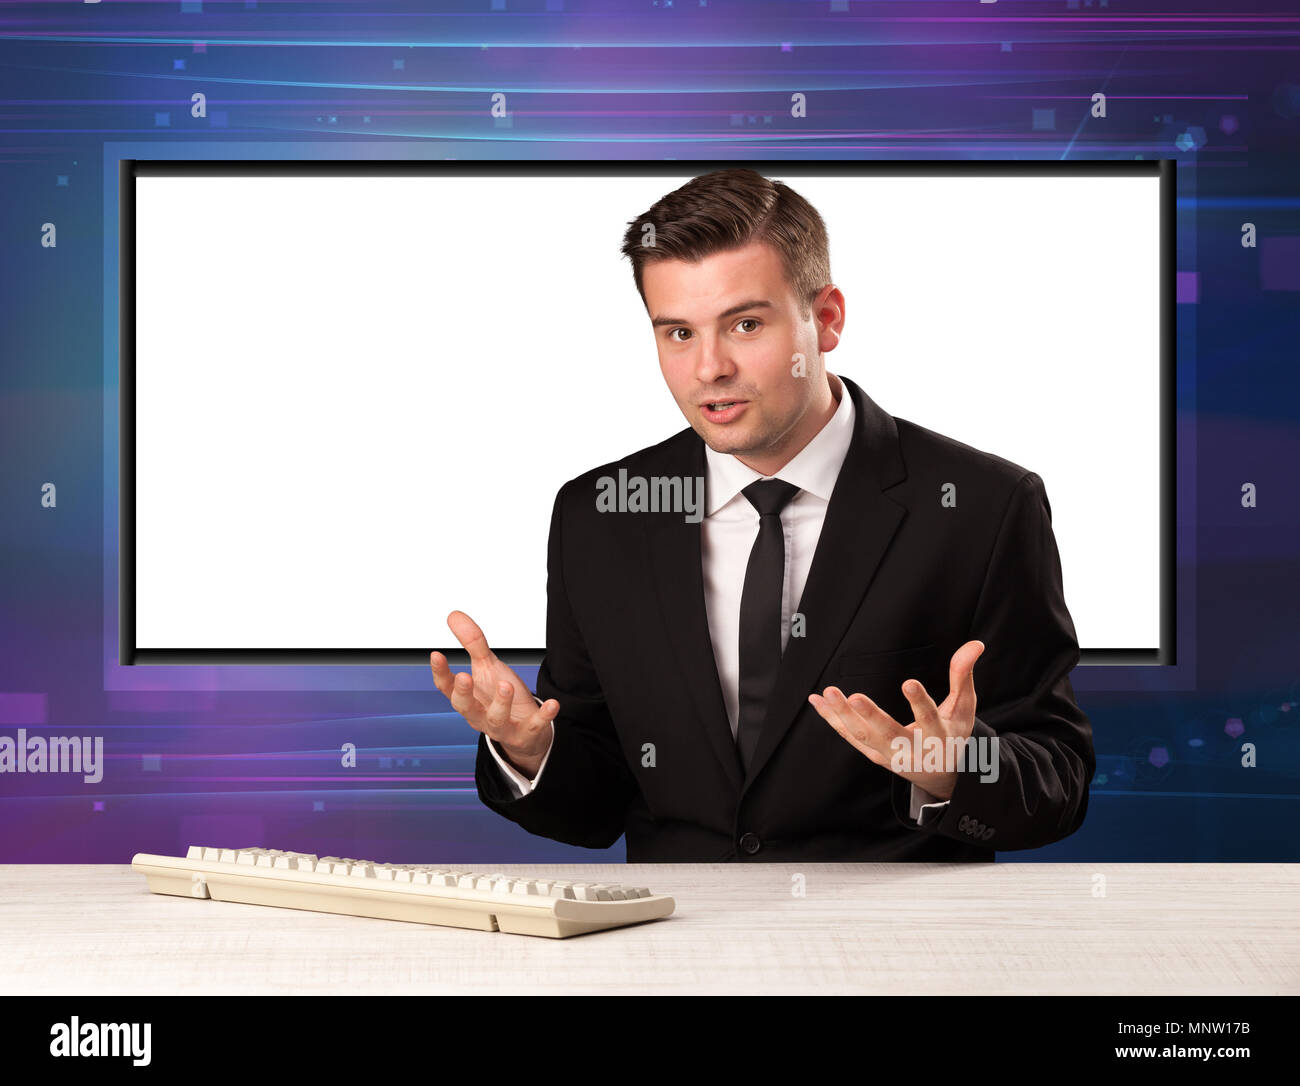 Television program host with big copy screen in his back concept - Stock Image